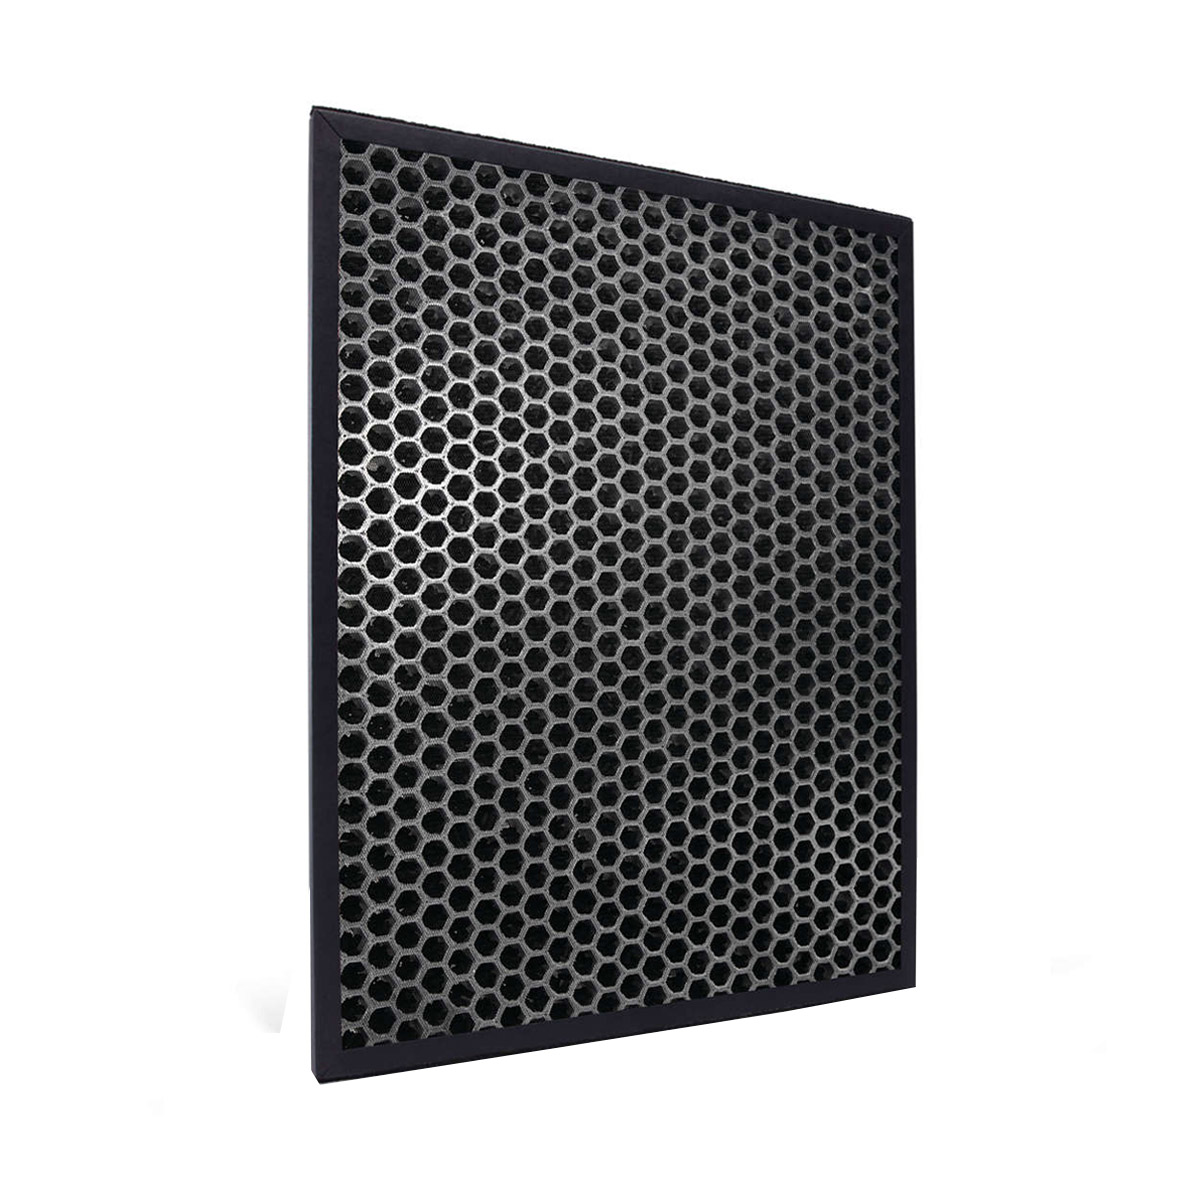 Philips NanoProtect Active Carbon Series 3000 Replacement Filter